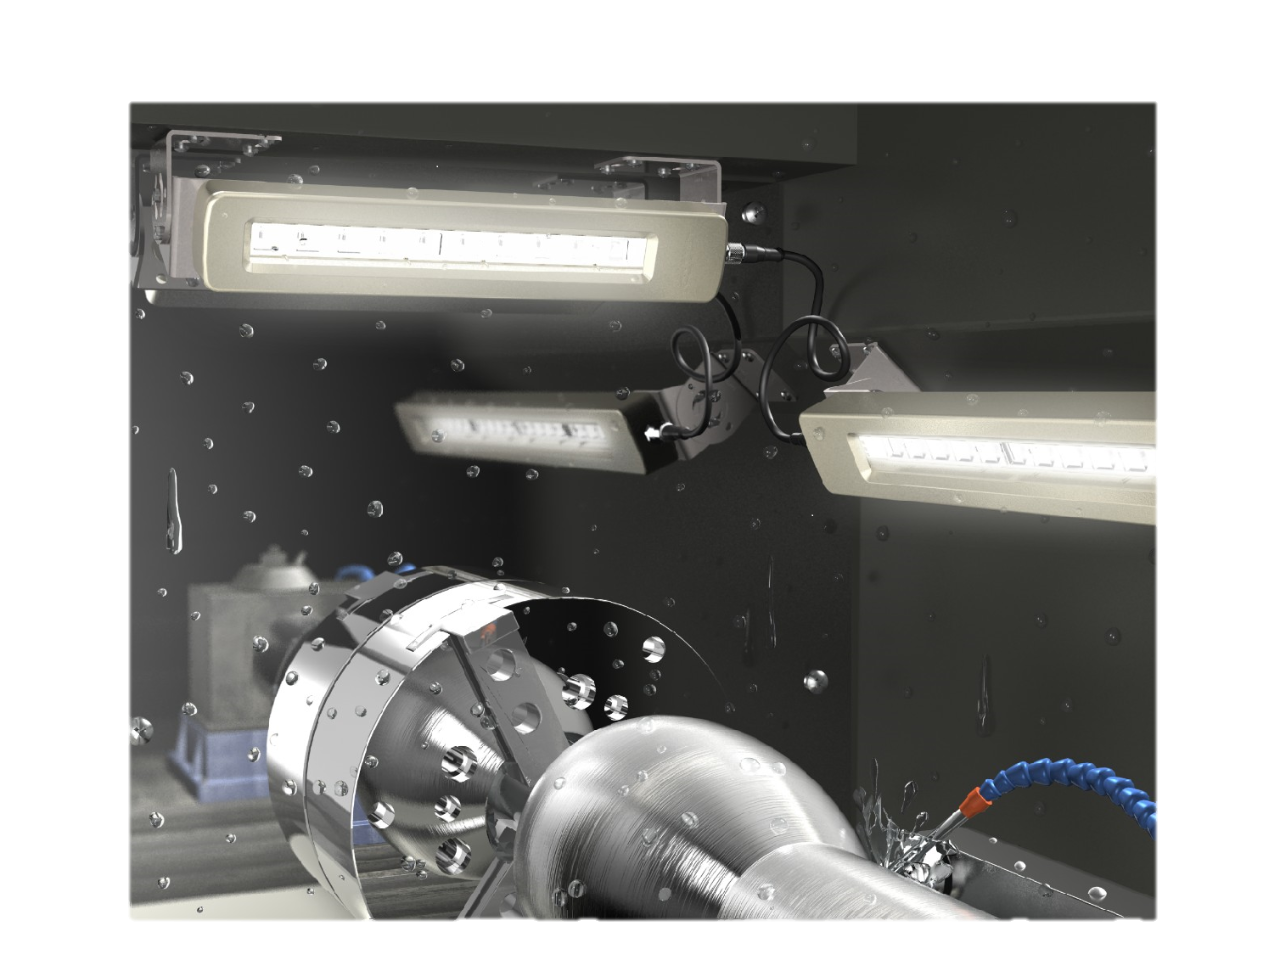 Cost-effective LED Lights Replace Fluorescent Fixtures in Machines